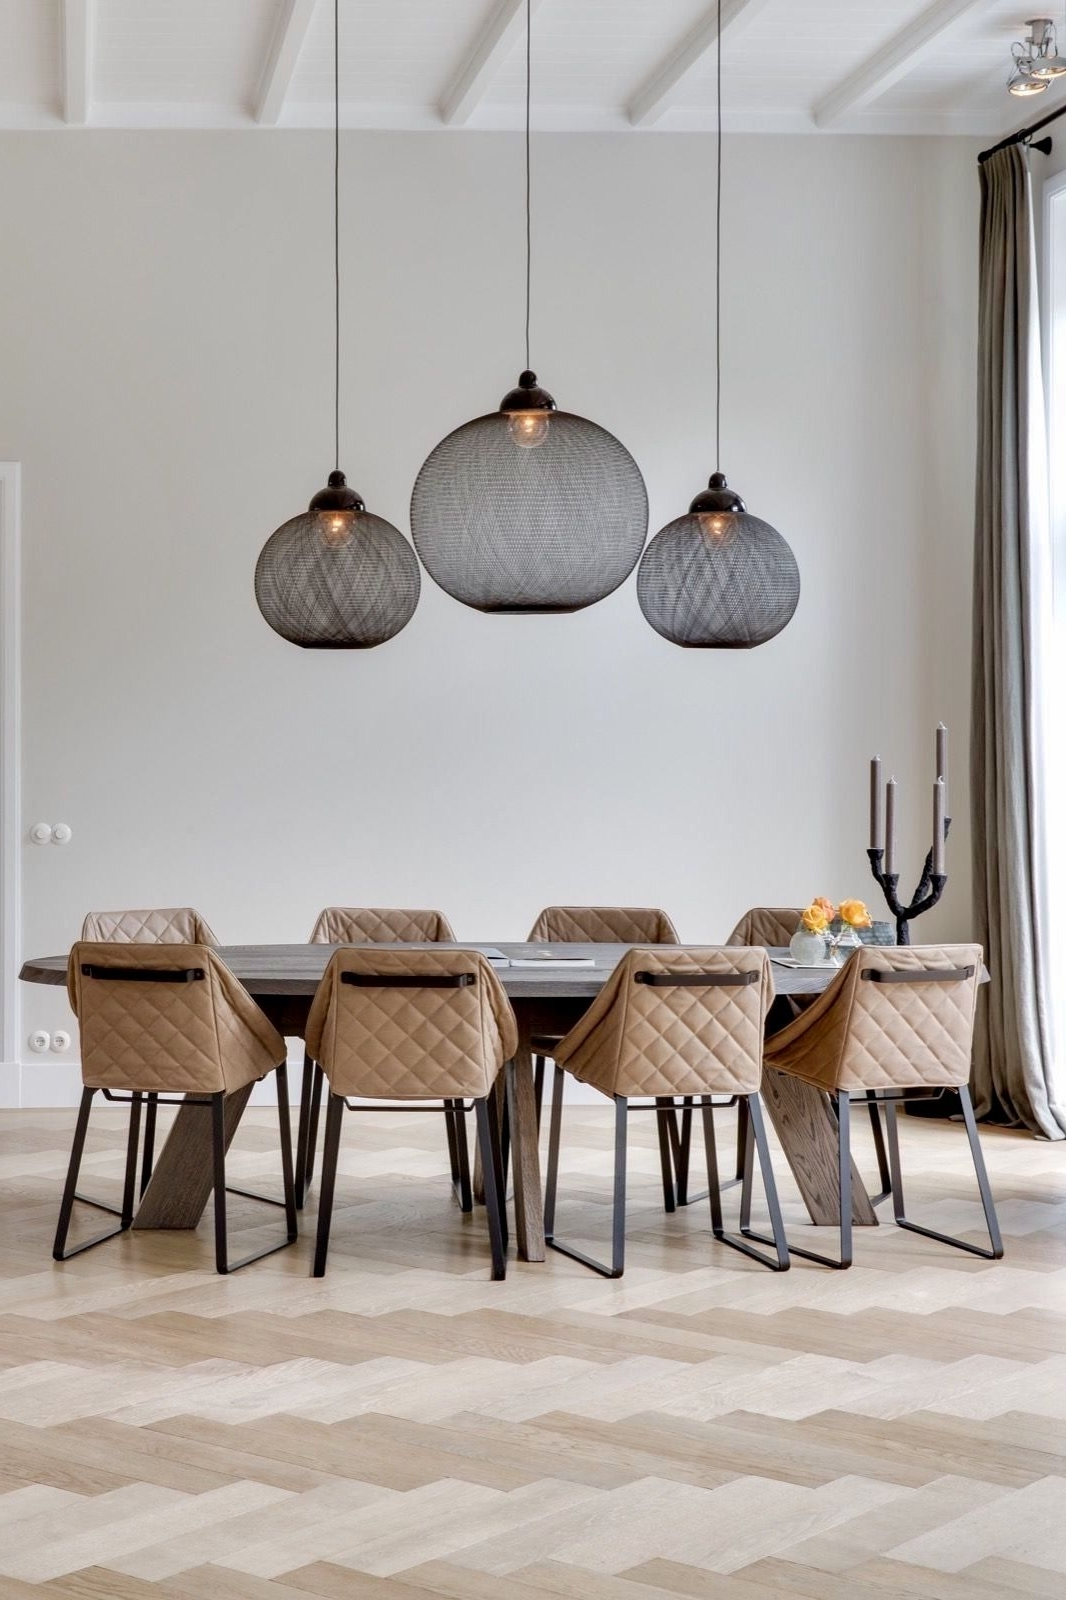 Current Dining Room Pendant New Pendant Lighting For Dining Room Best Dining With Over Dining Tables Lighting (View 8 of 25)